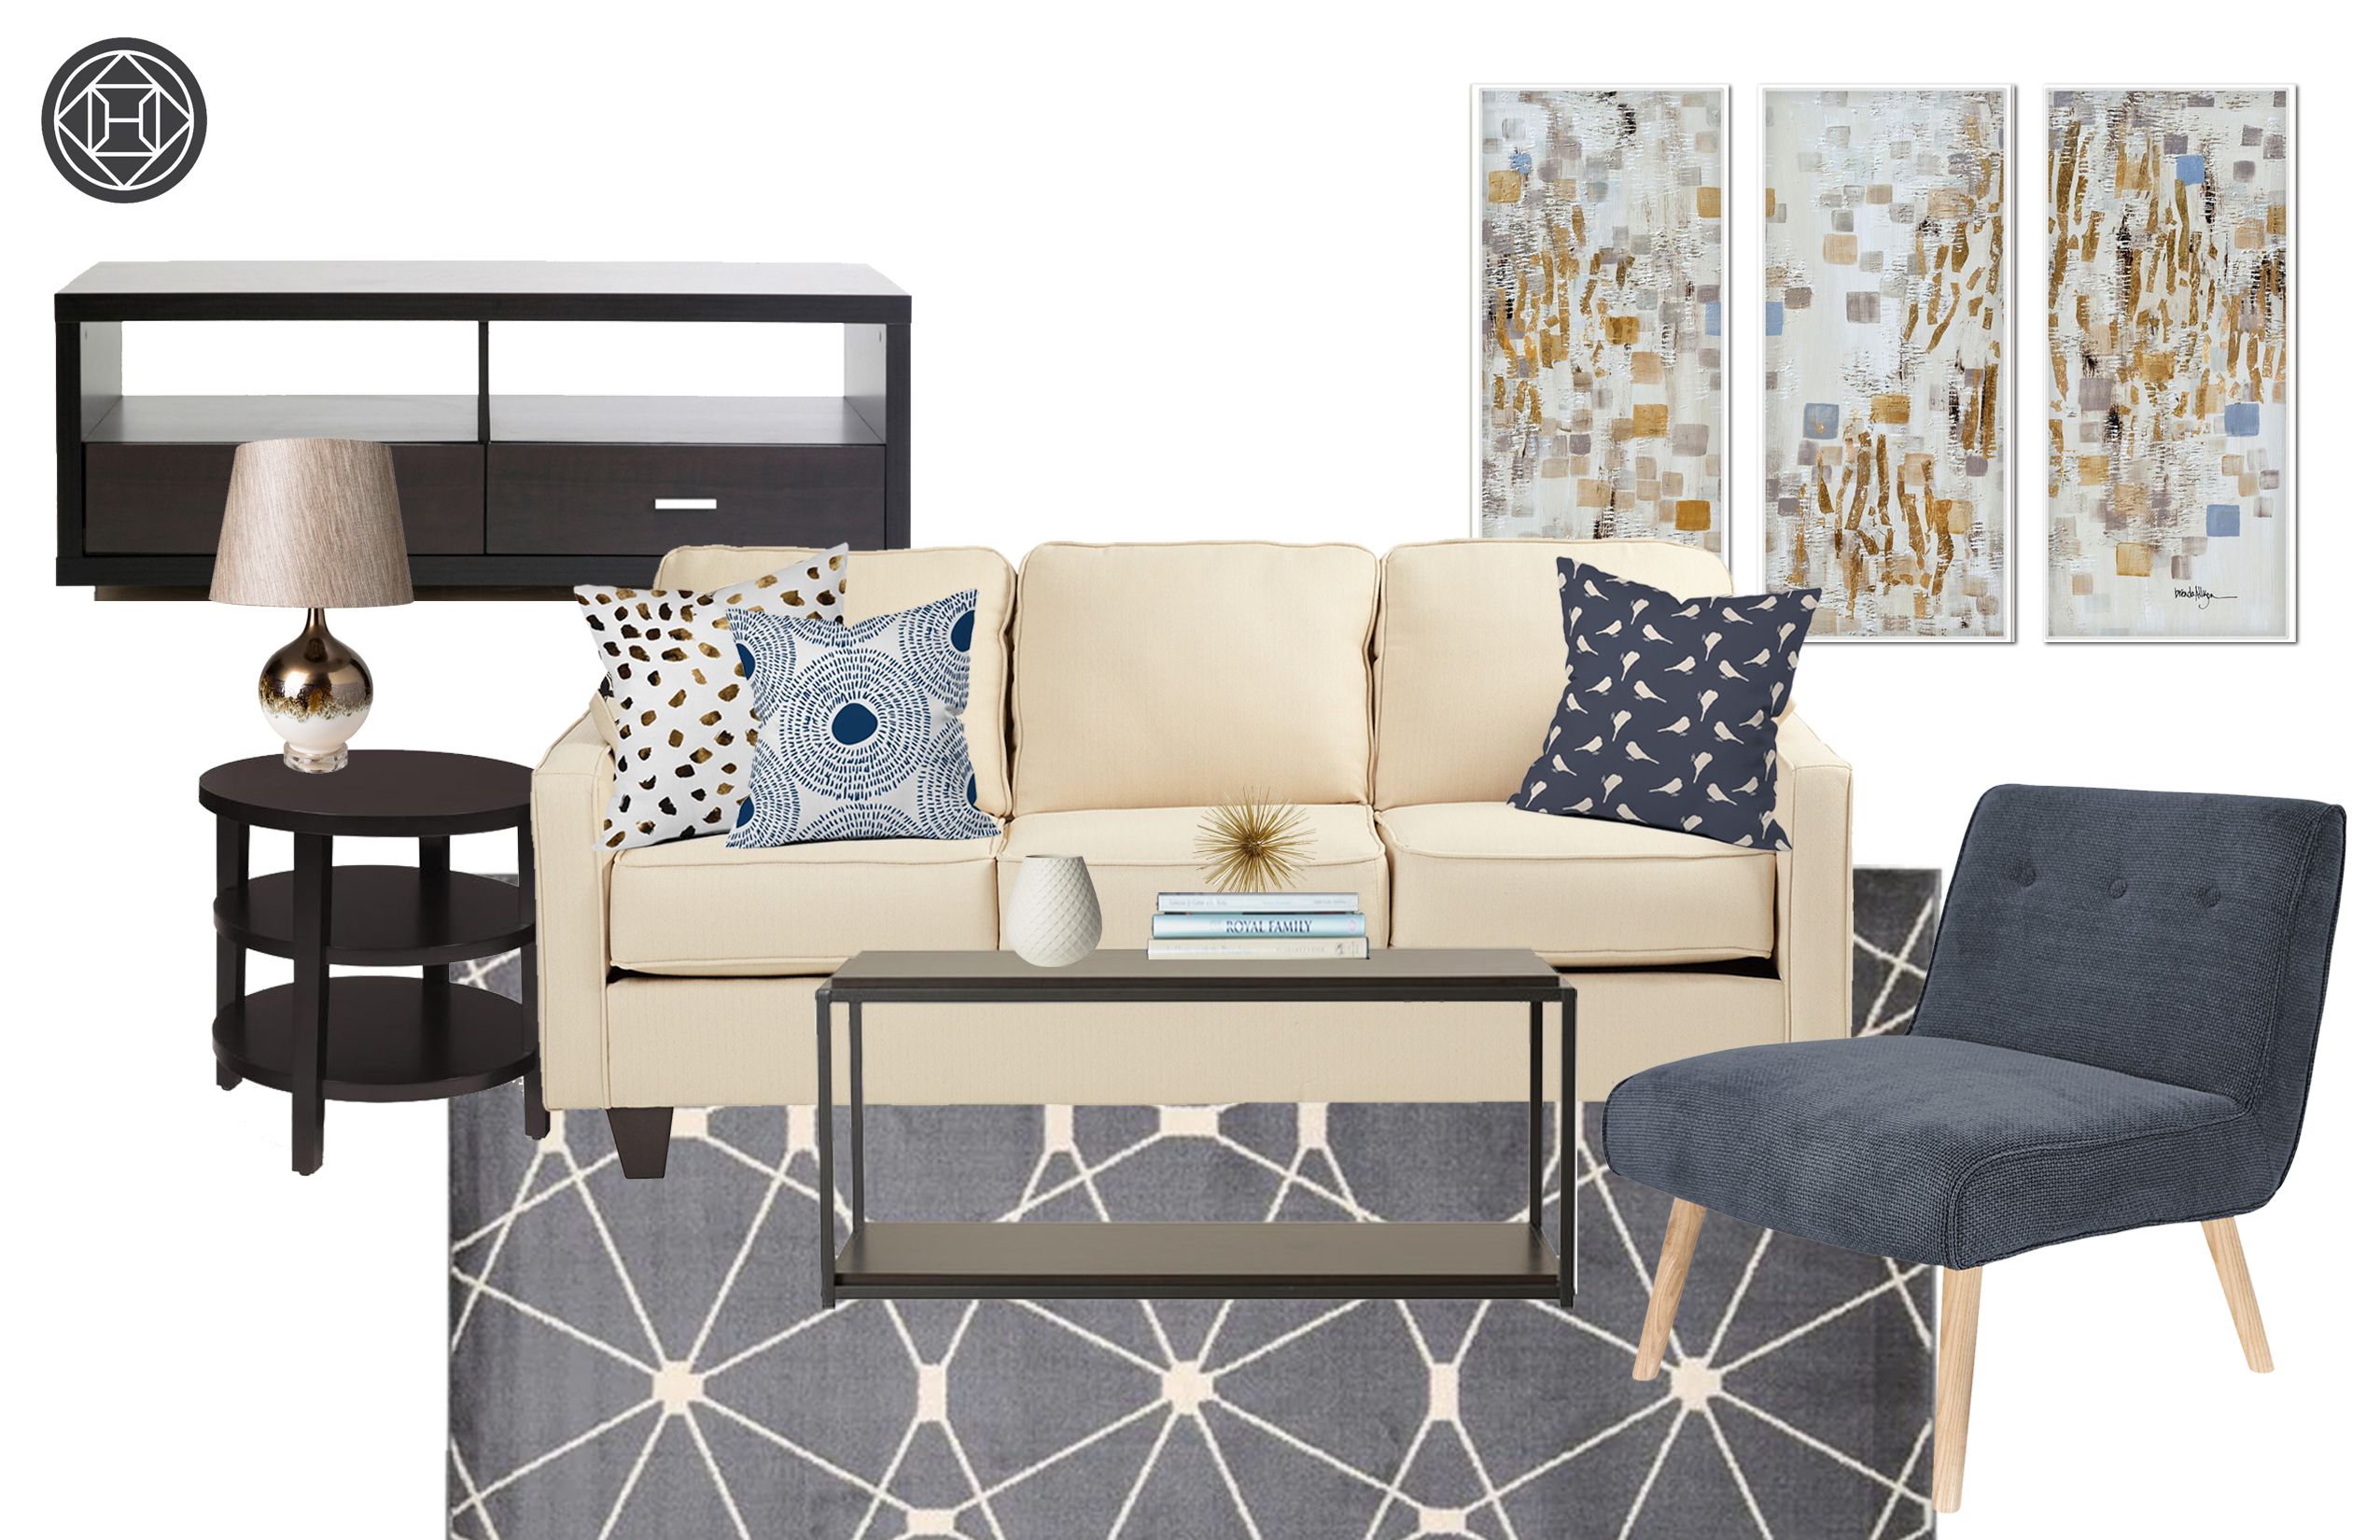 Contemporary Modern Living Room Design By Havenly Interior Designer